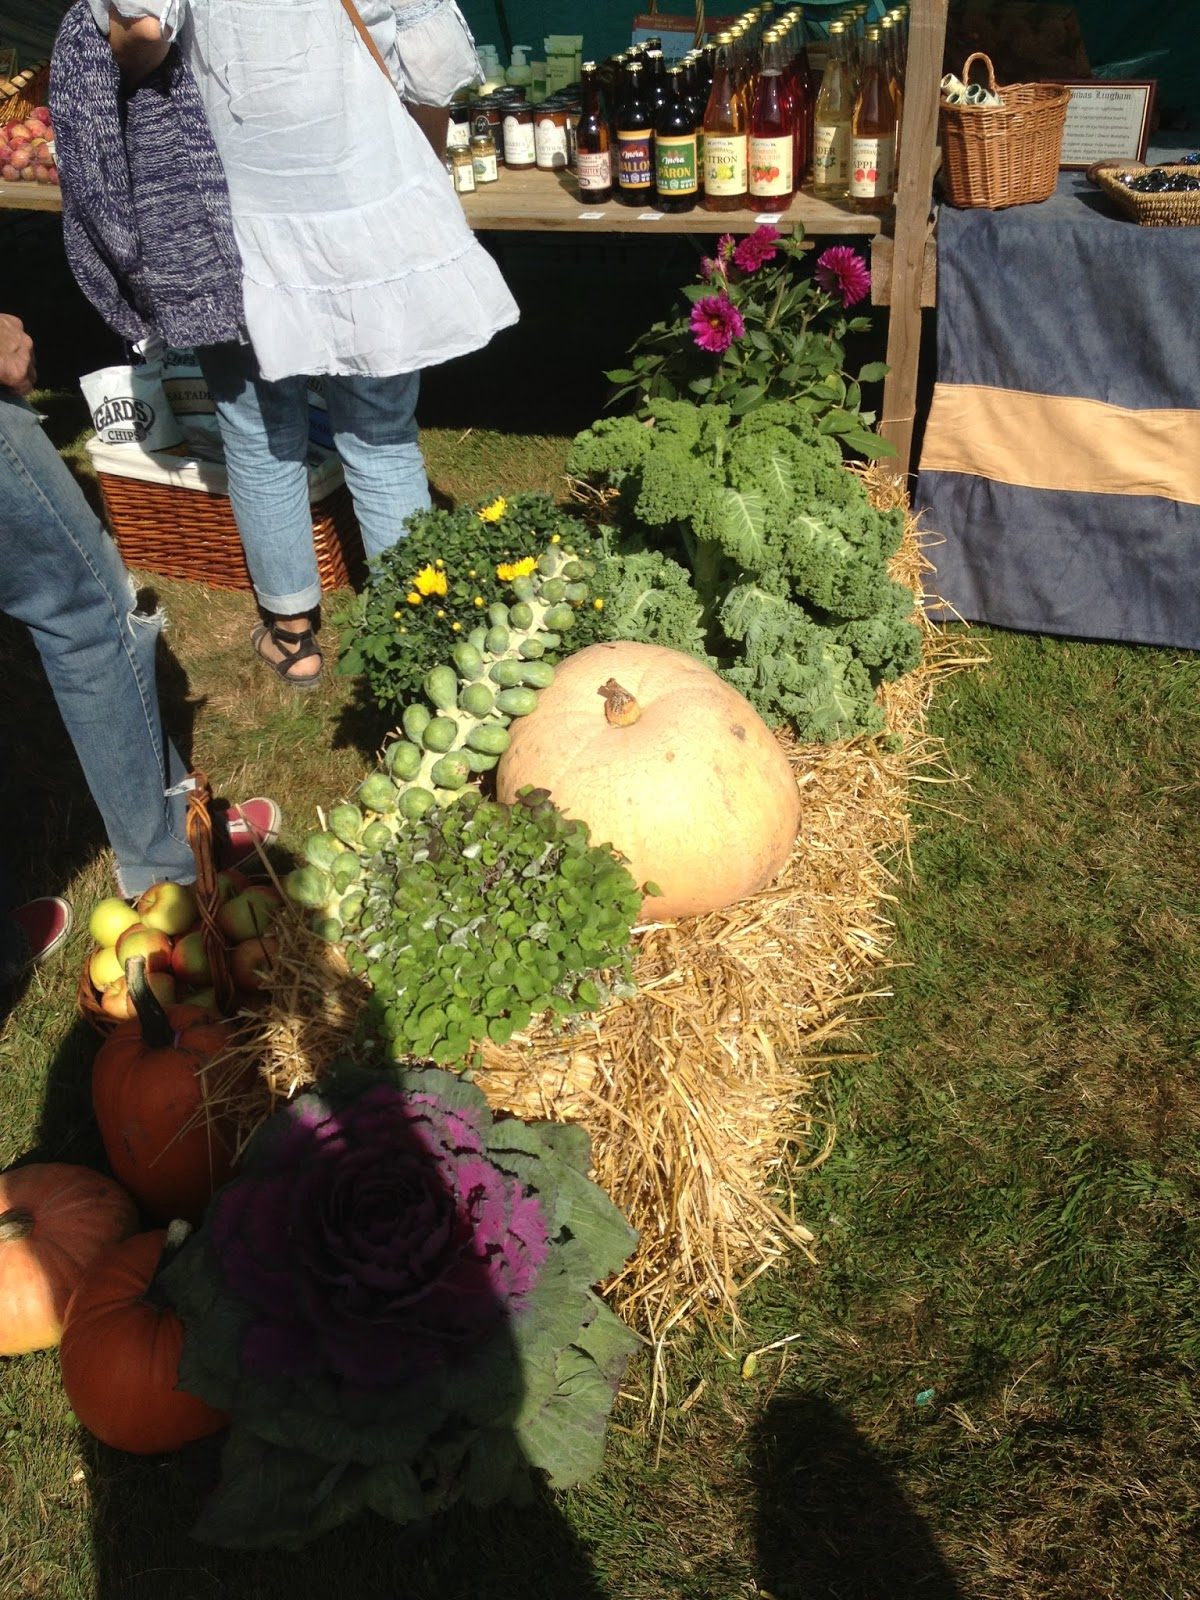 image from Vångabygdens Skördefest - Vanga District's Harvest Festival